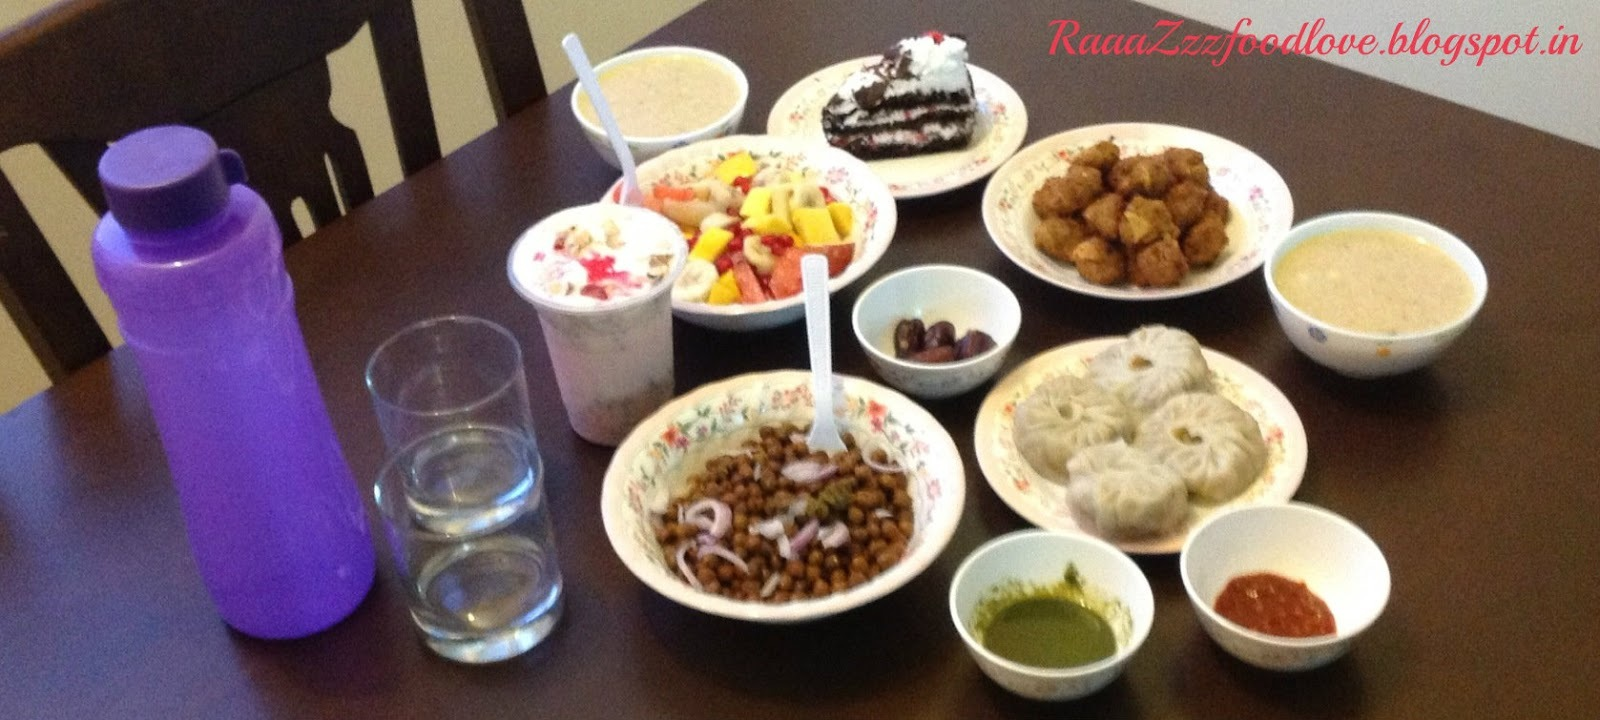 An Iftar Menu at my home - 2013